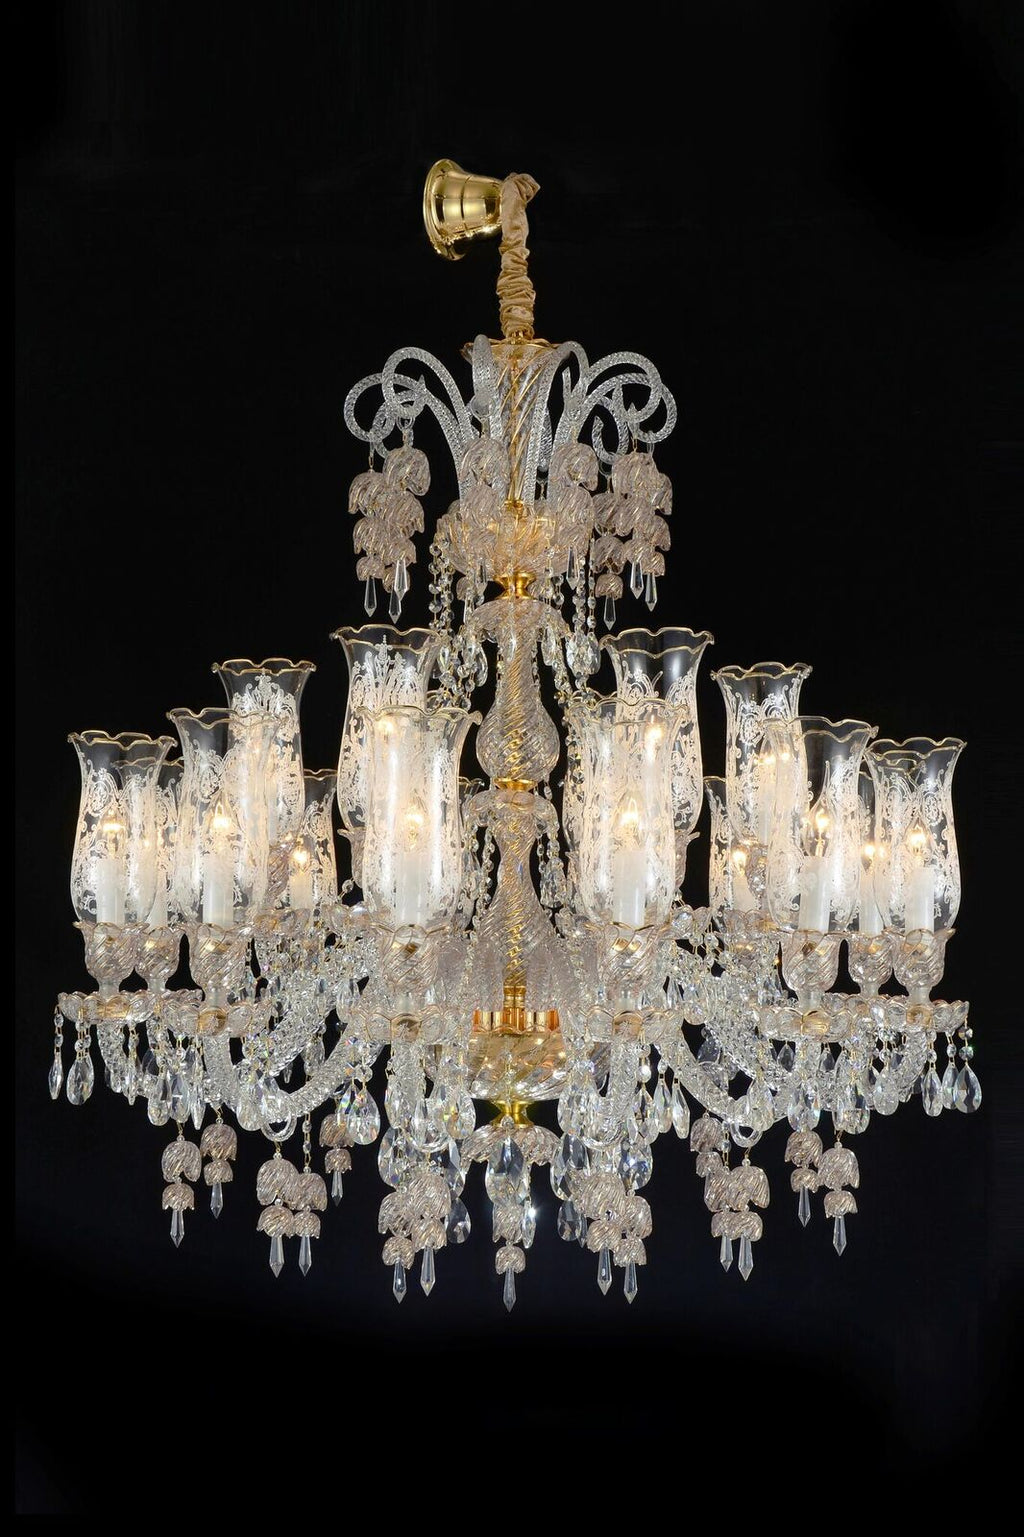 Garnier Chandelier in 2 Sizes